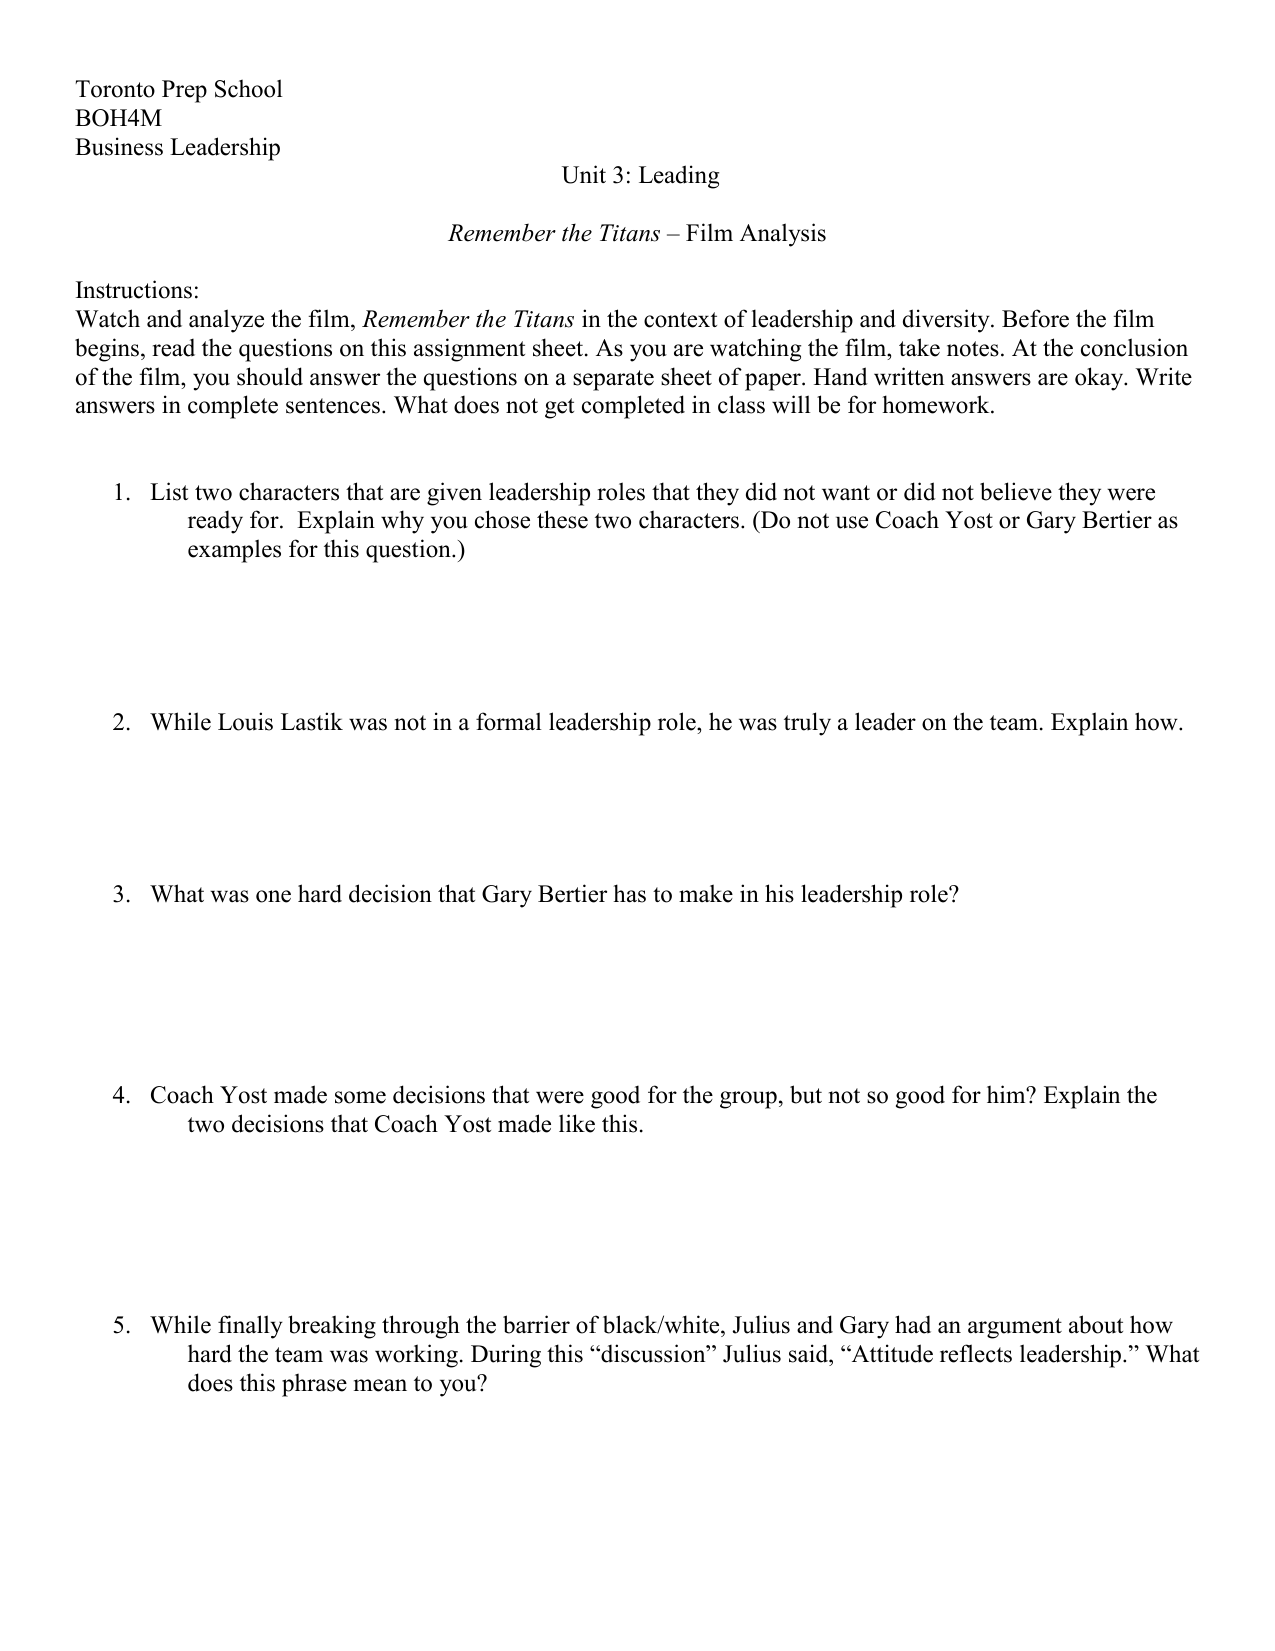 Remember the Titans Business Leadership – Remember the Titans Worksheet